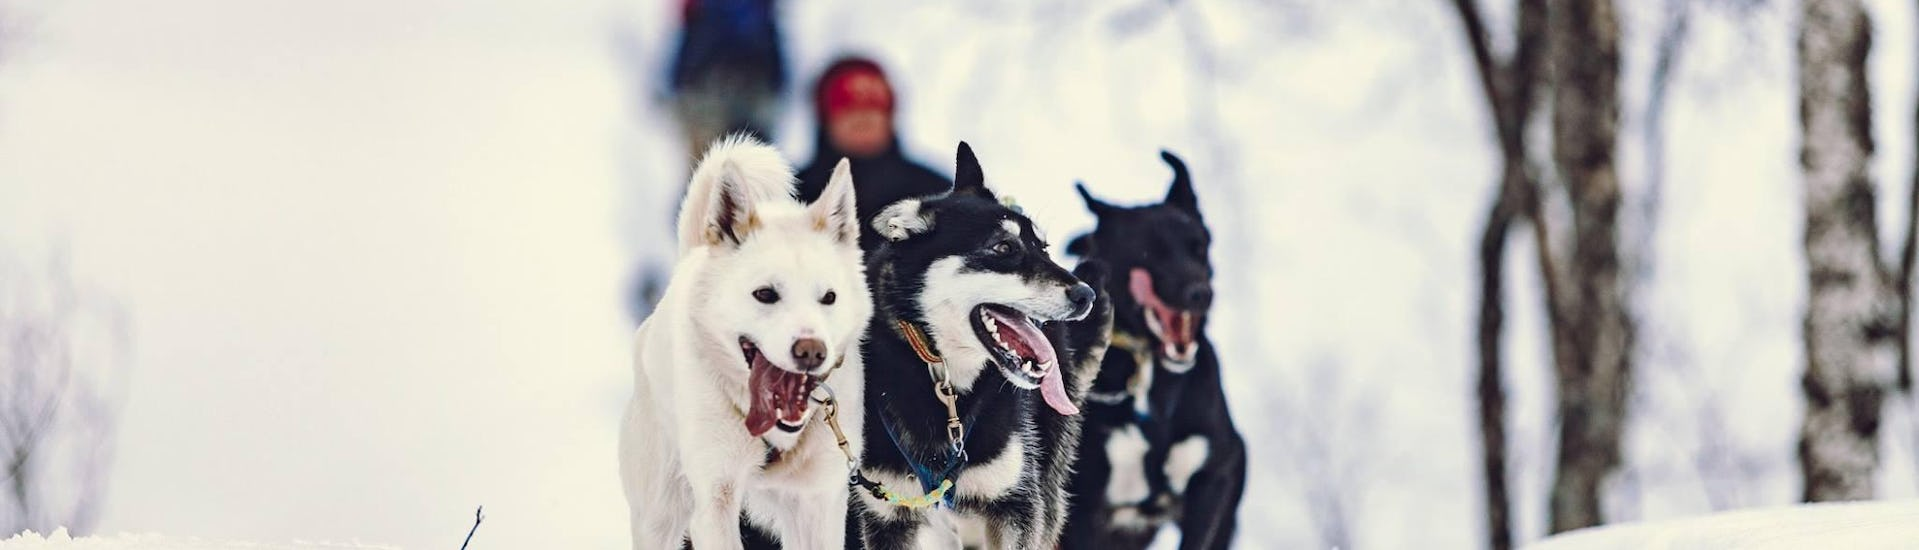 A group of huskies run contentedly through the snow-covered forest with lyngsfjord adventure near tromso